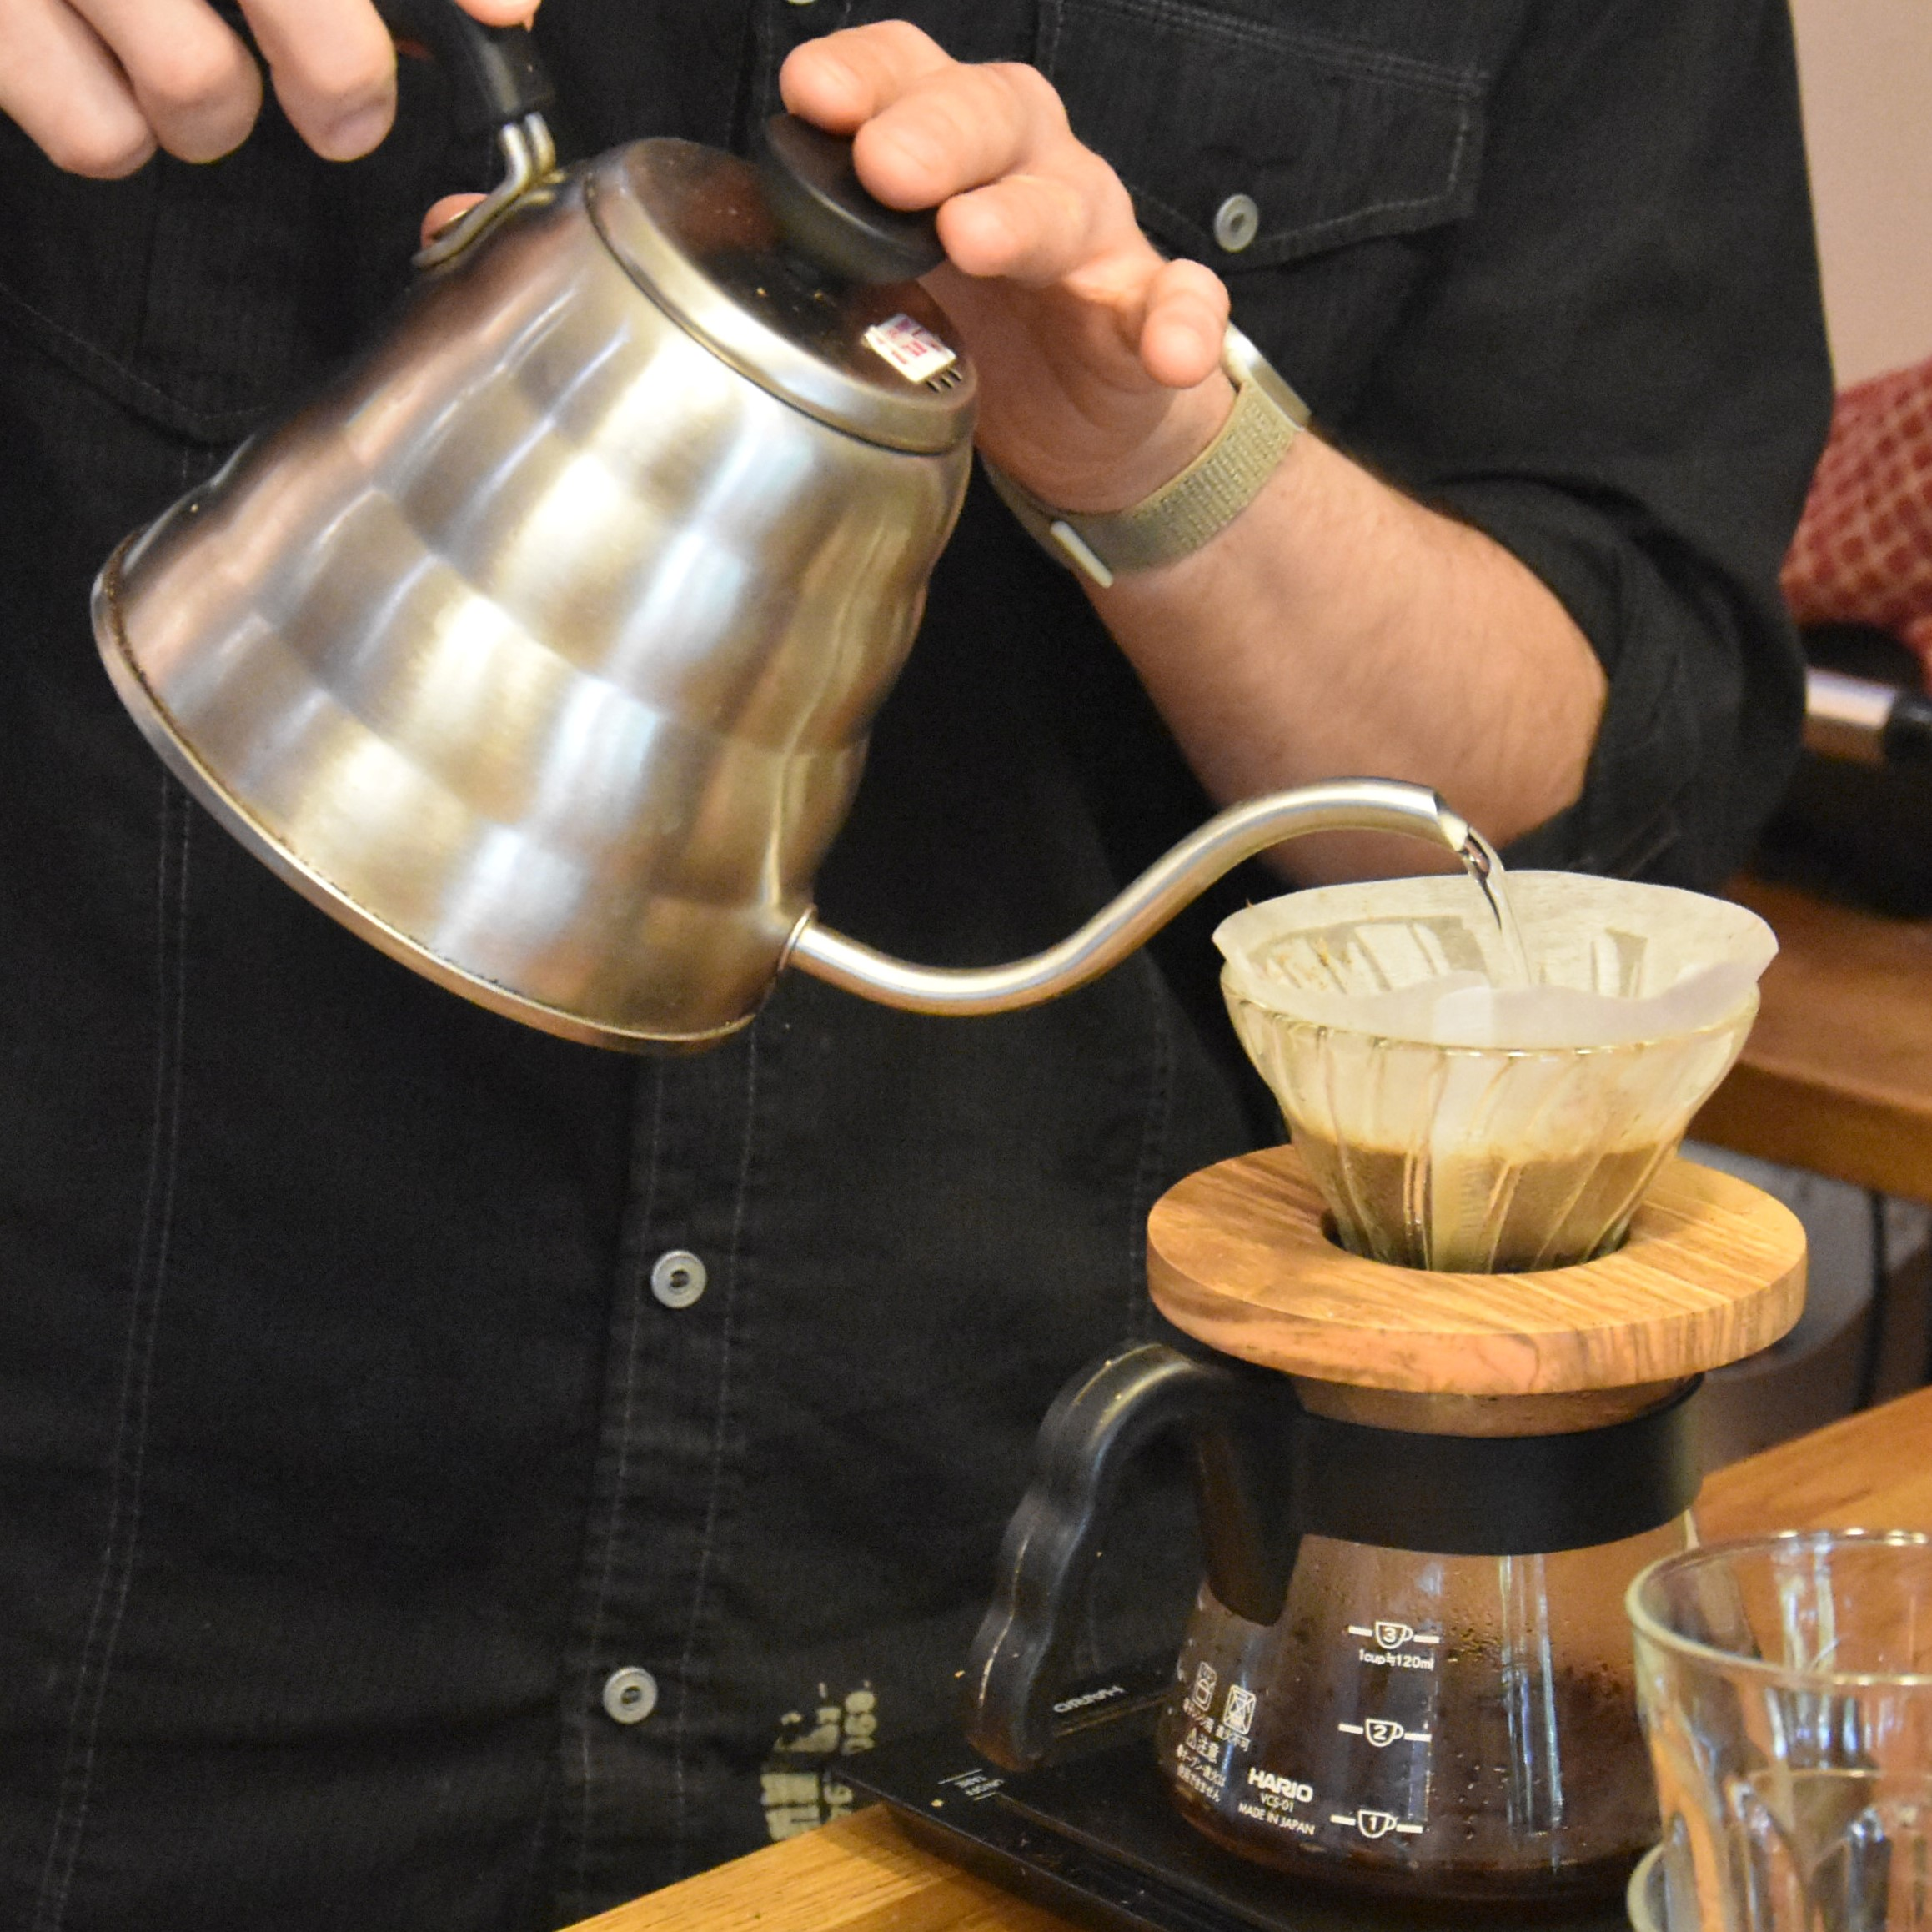 A V60 pour-over being made using a gooseneck kettle at MyCloud Coffee.